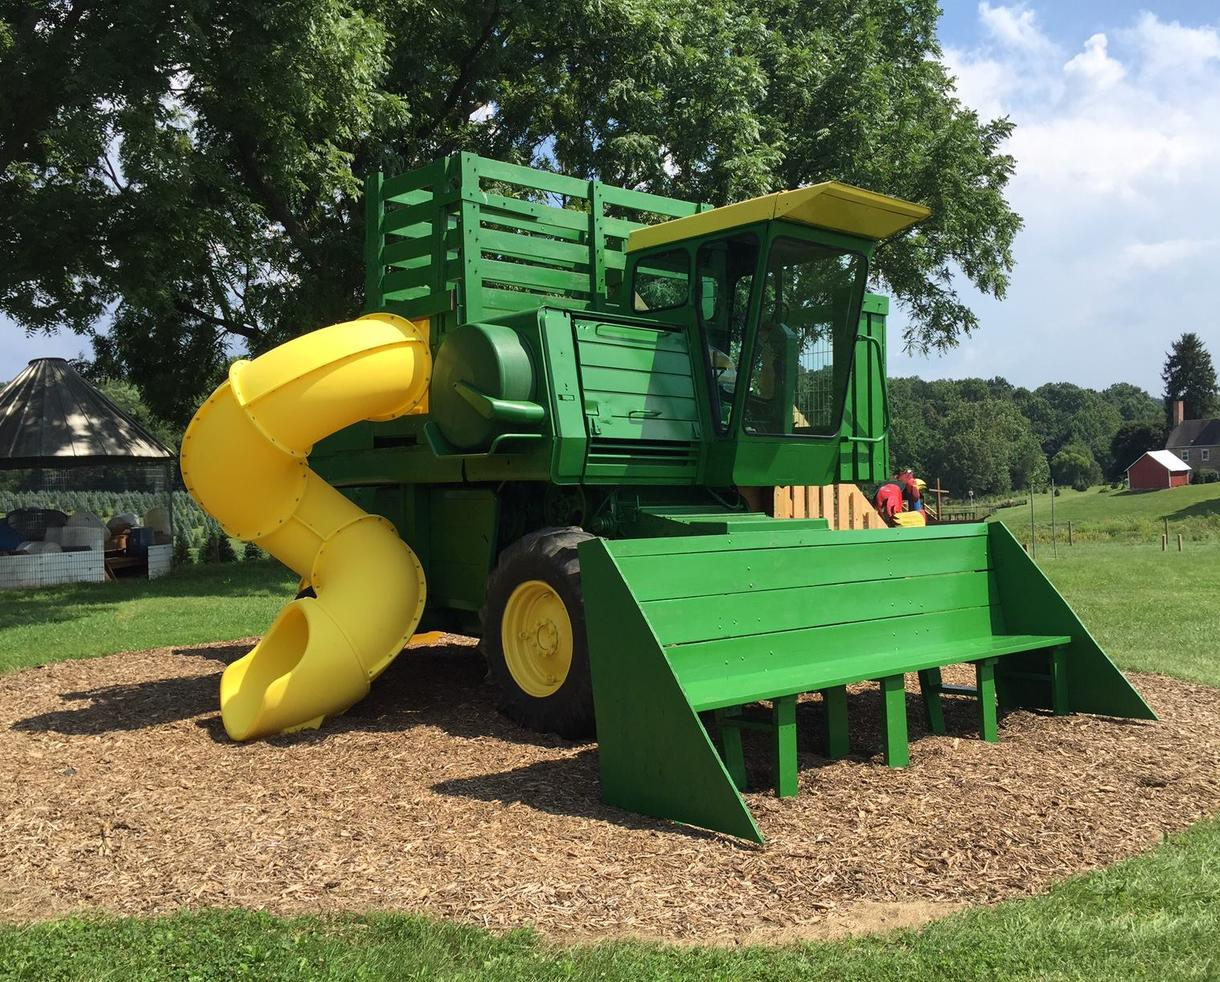 TWO Weekend Admissions to Gaver Farm